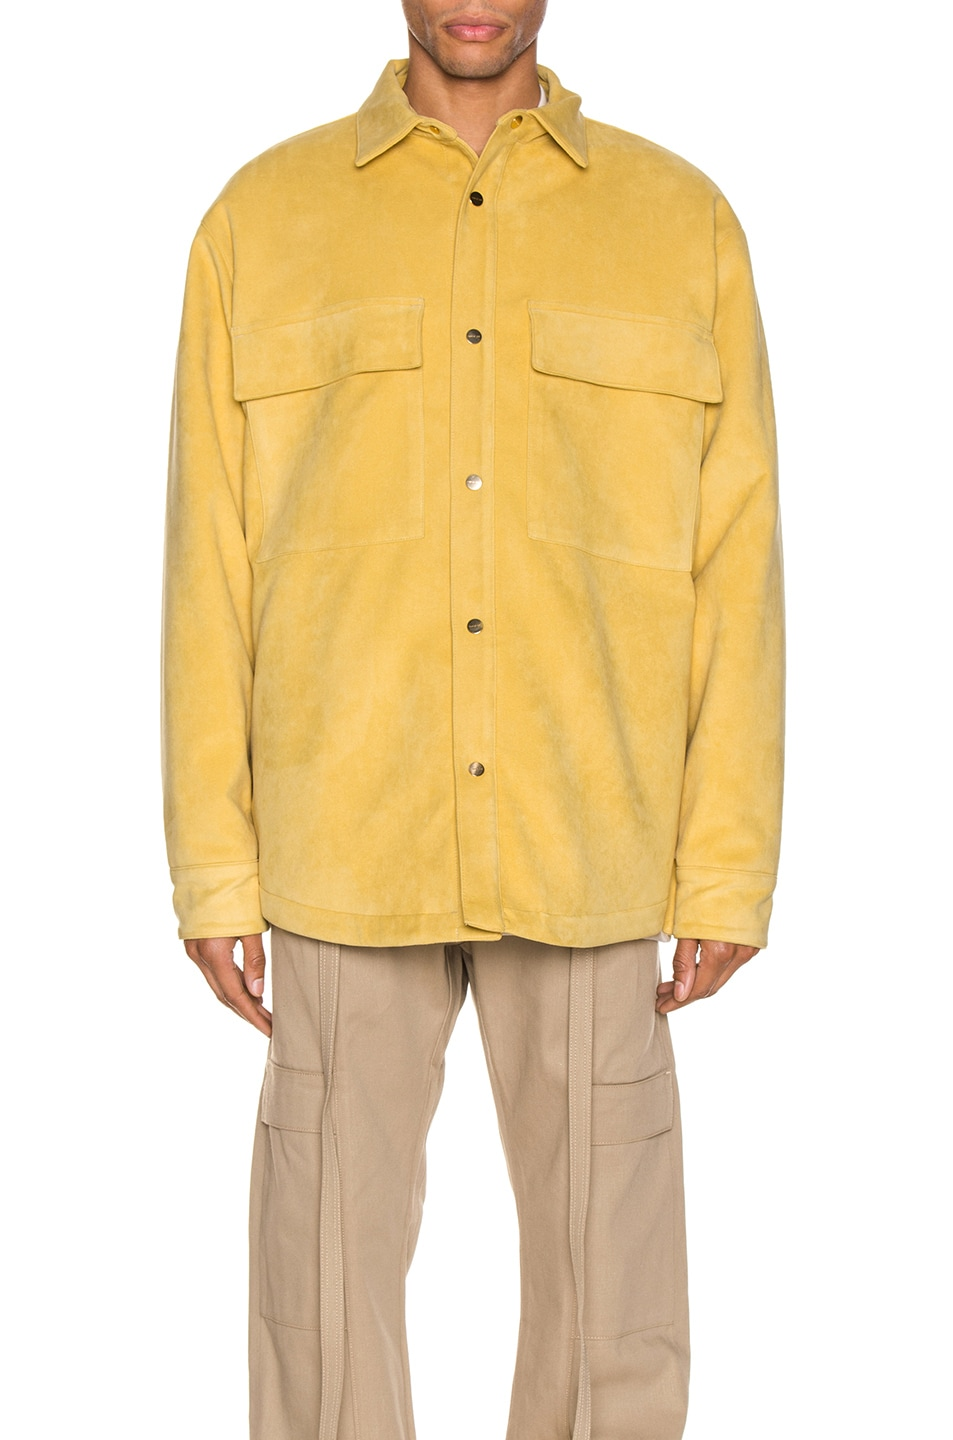 Image 2 of Fear of God Suede Shirt Jacket in Garden Glove Yellow